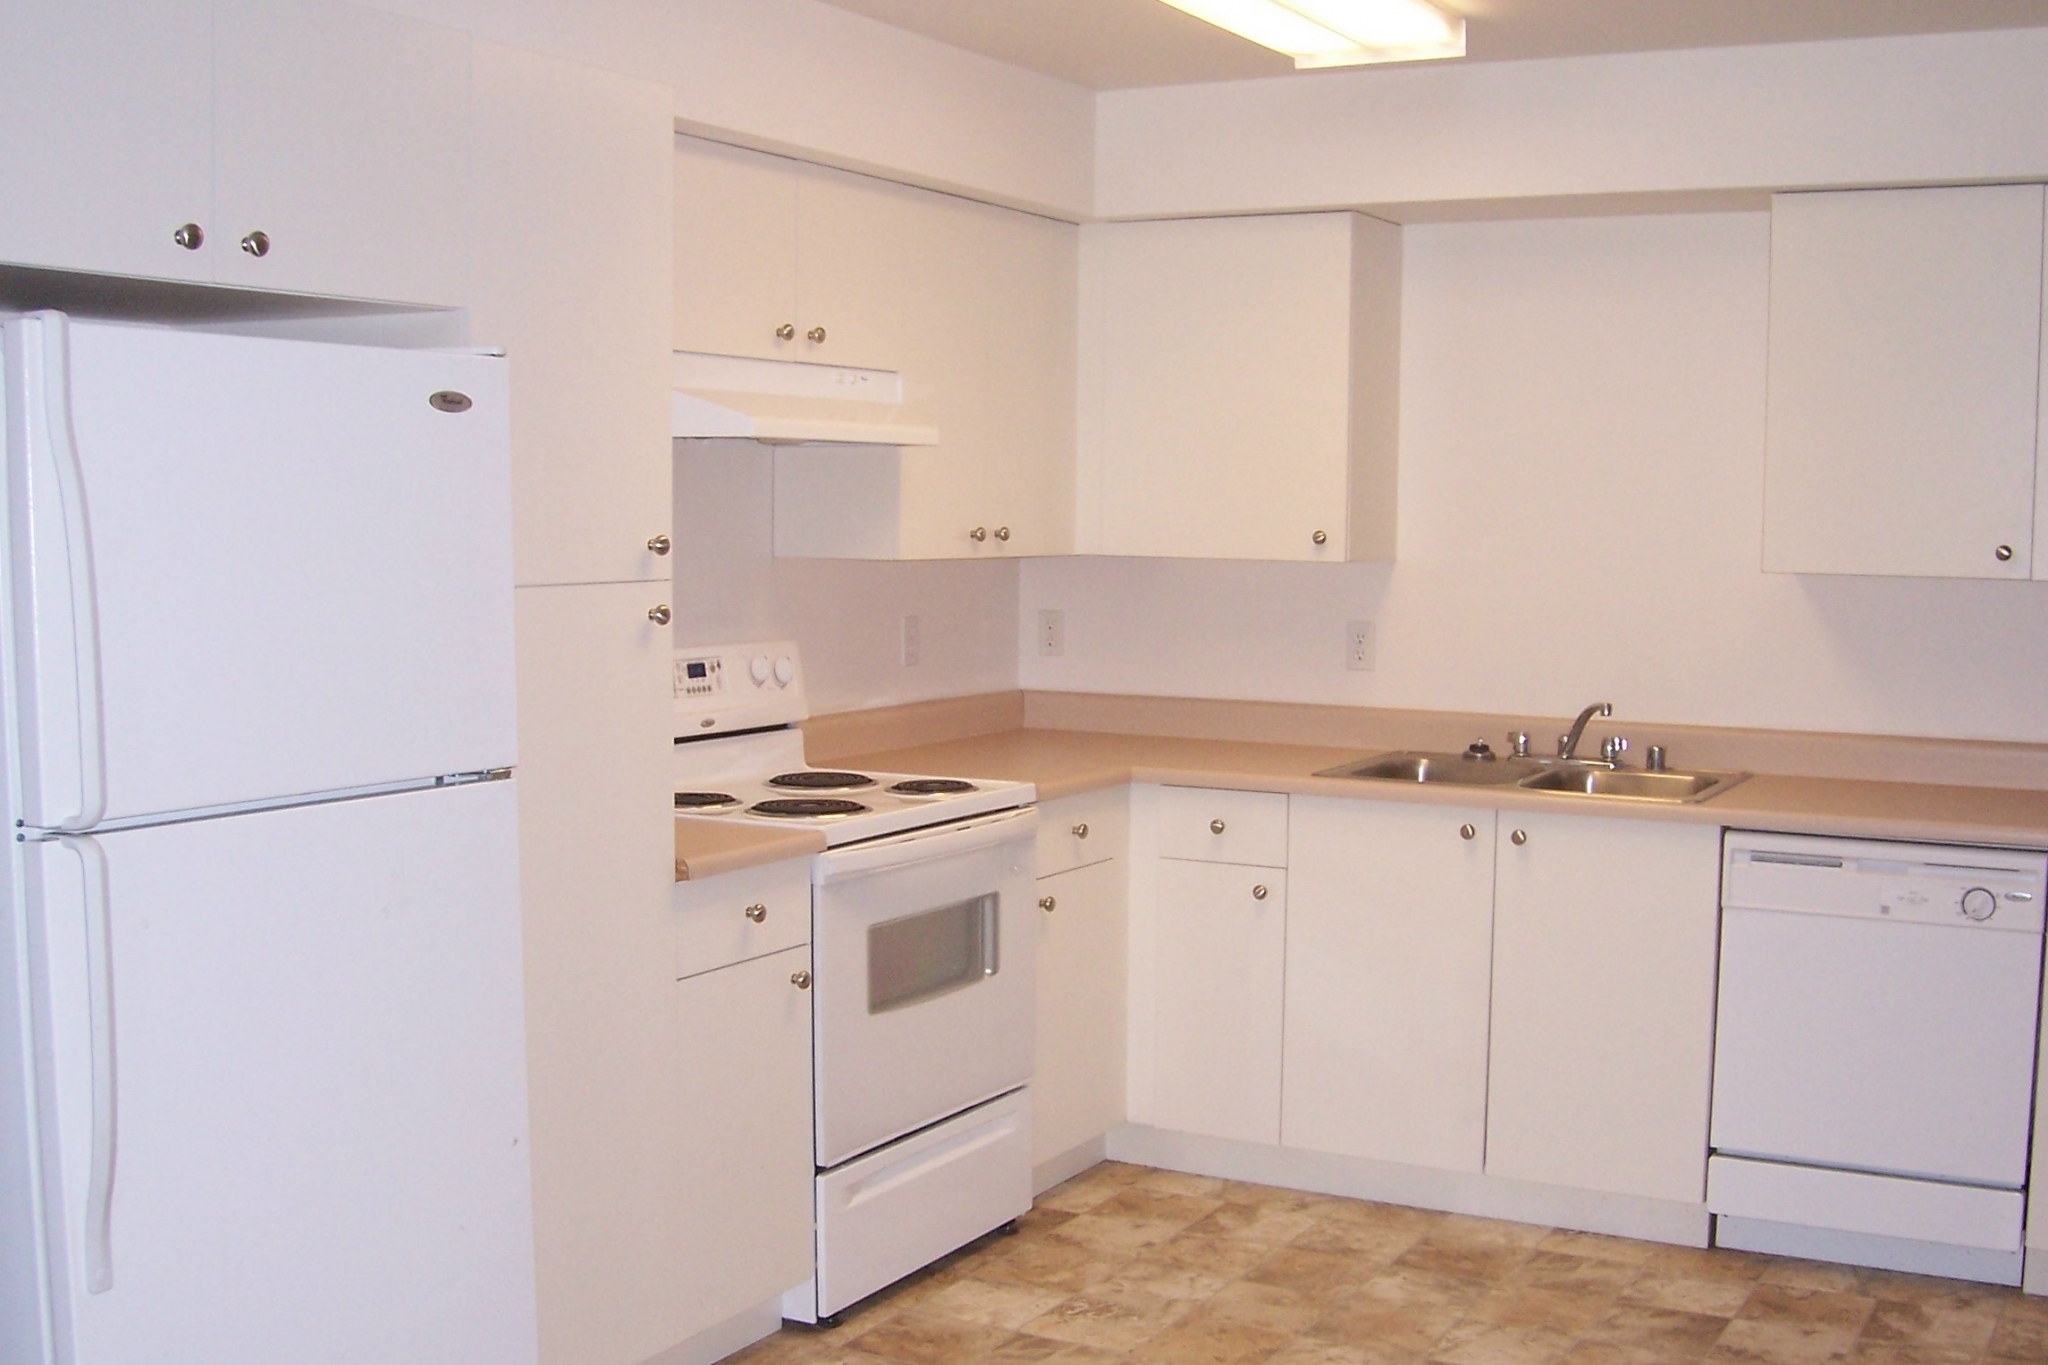 Image of Spacious and Efficient Refrigerators for Terre View Apartments